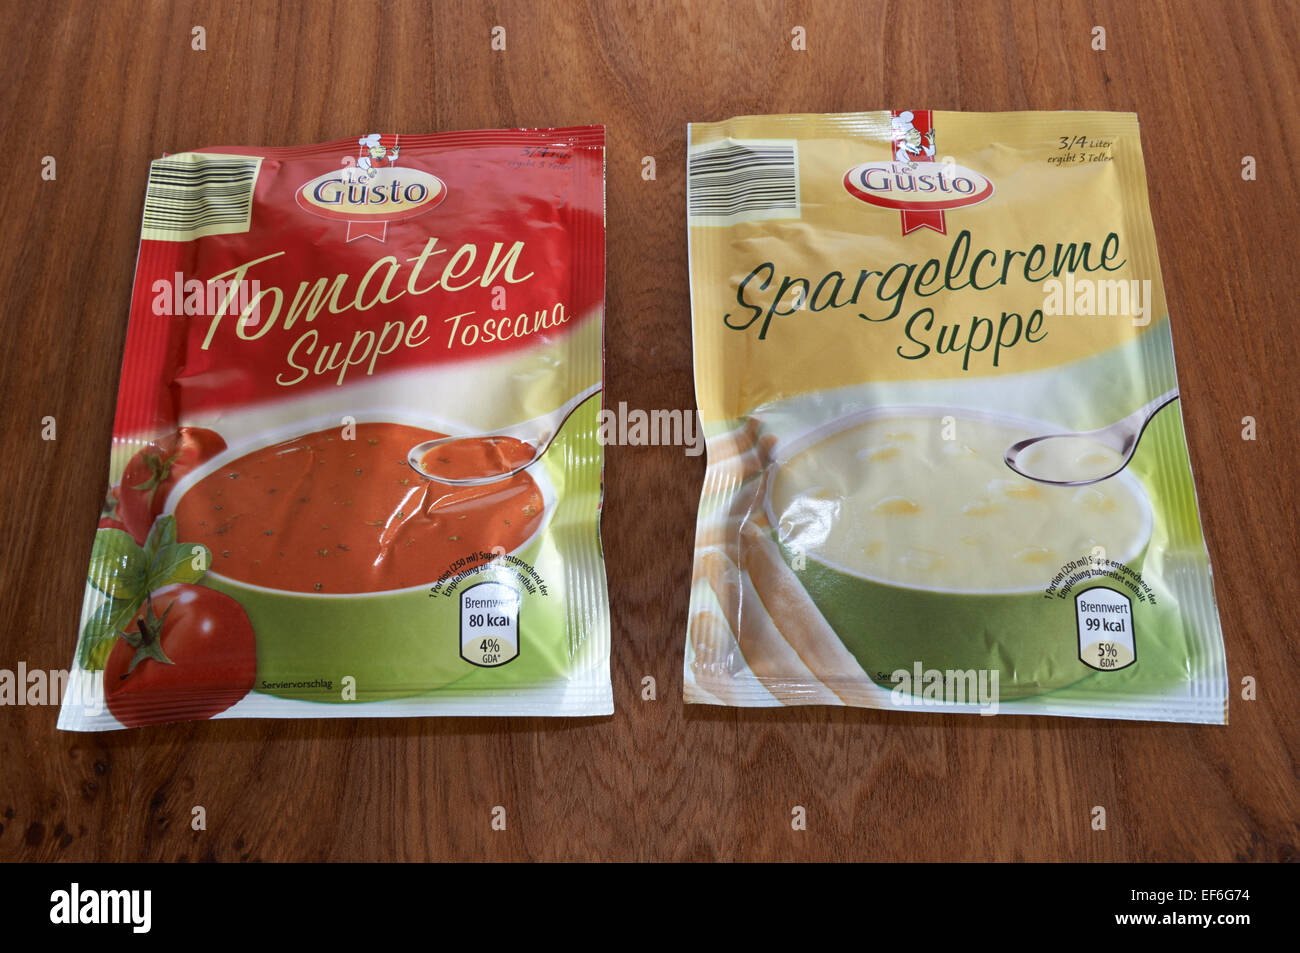 Le Gusto packet soups - Stock Image